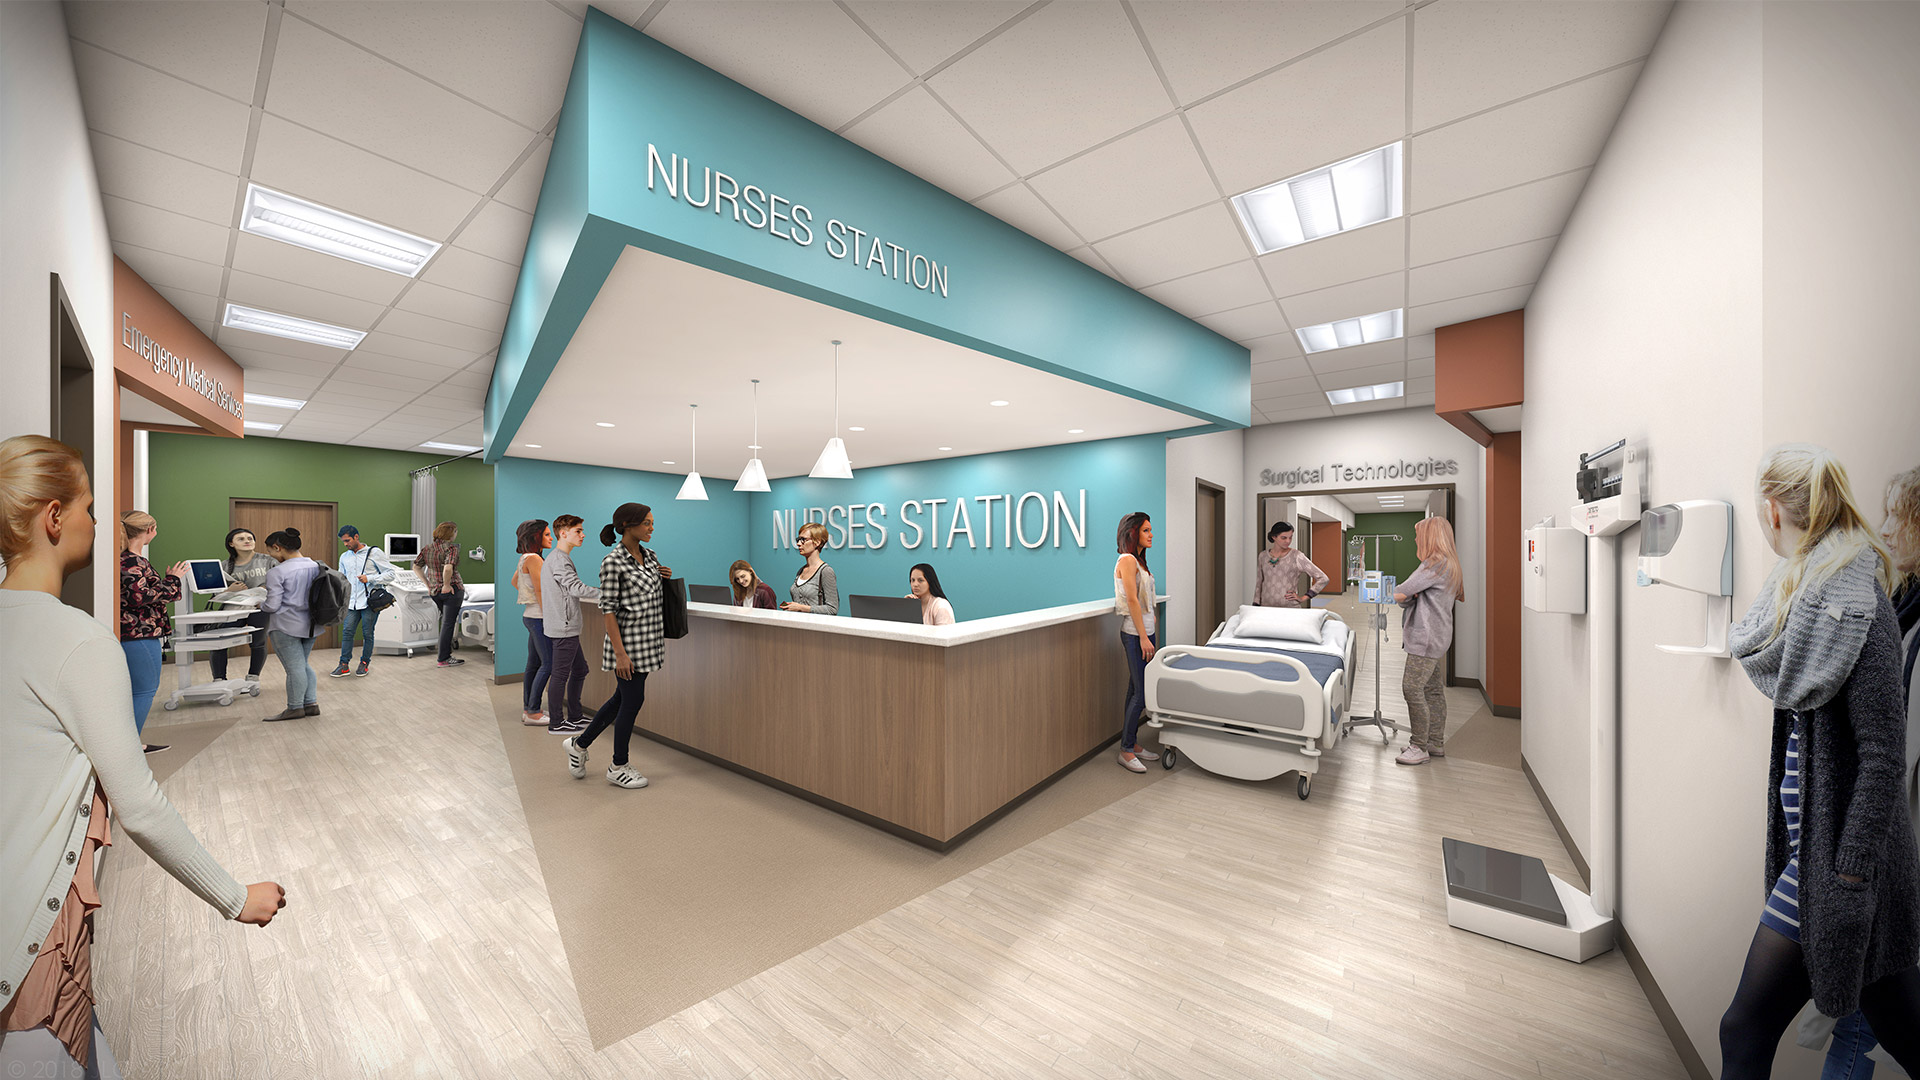 Rendering of a interior nurses station